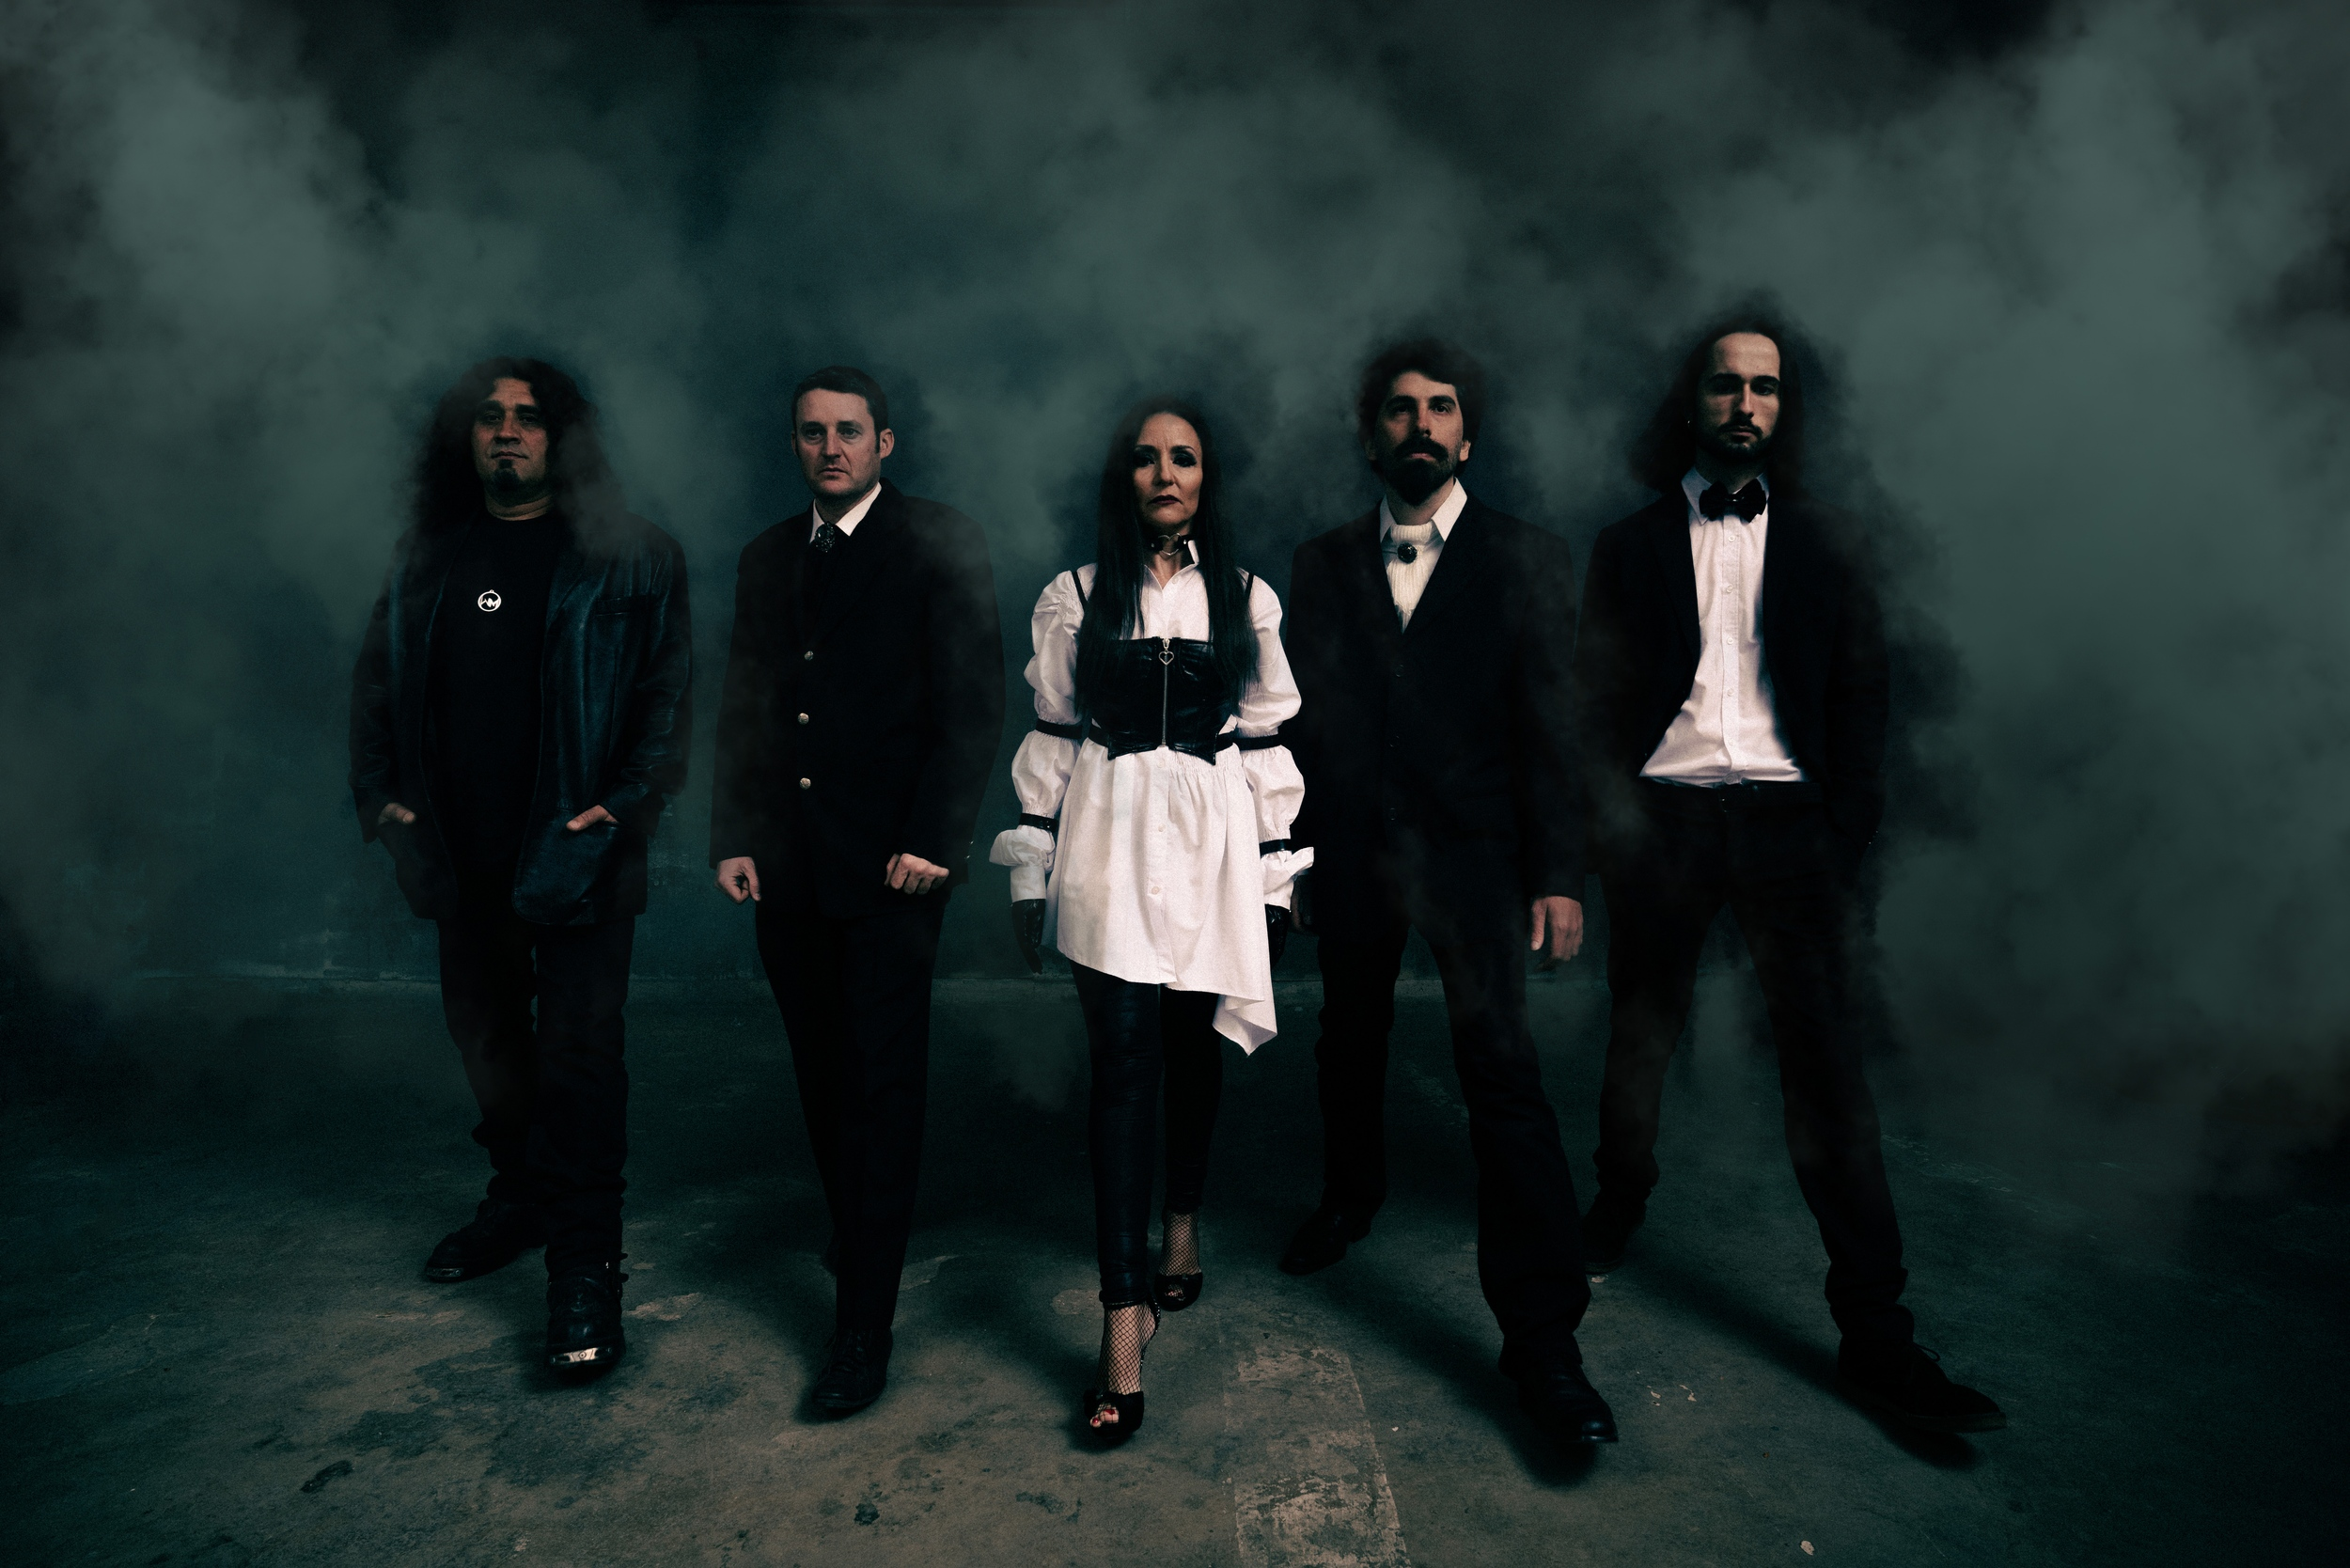 METALWINGS interview. New album, 'A Whole New World', out now.